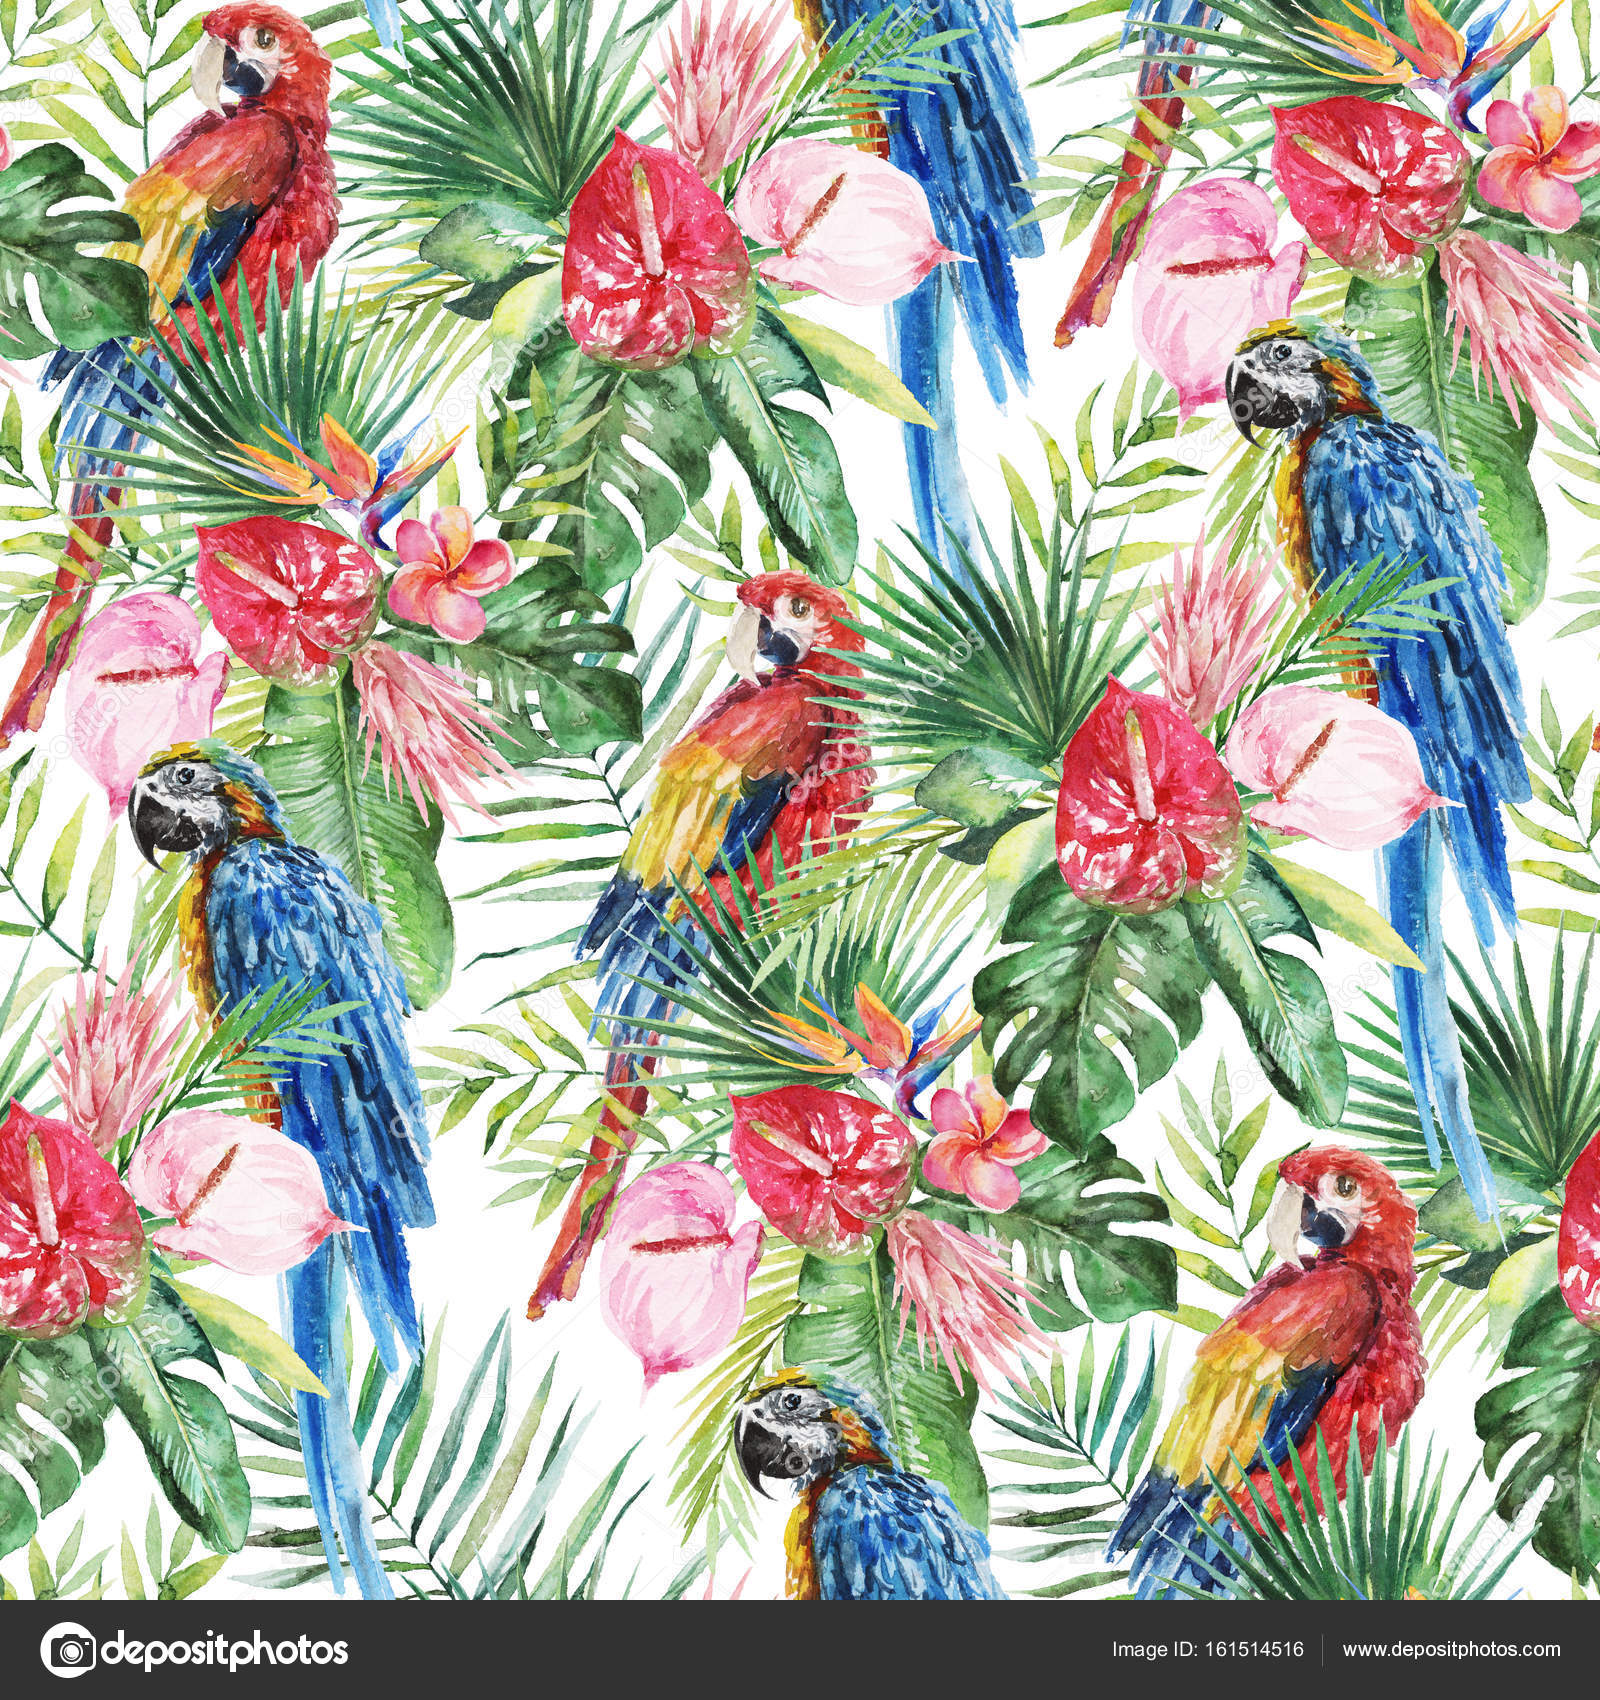 Green Palm Leaves Bright Macaw Parrots Colorful Flowers On The White Background Watercolor Hand Painted Seamless Pattern Tropical Illustration